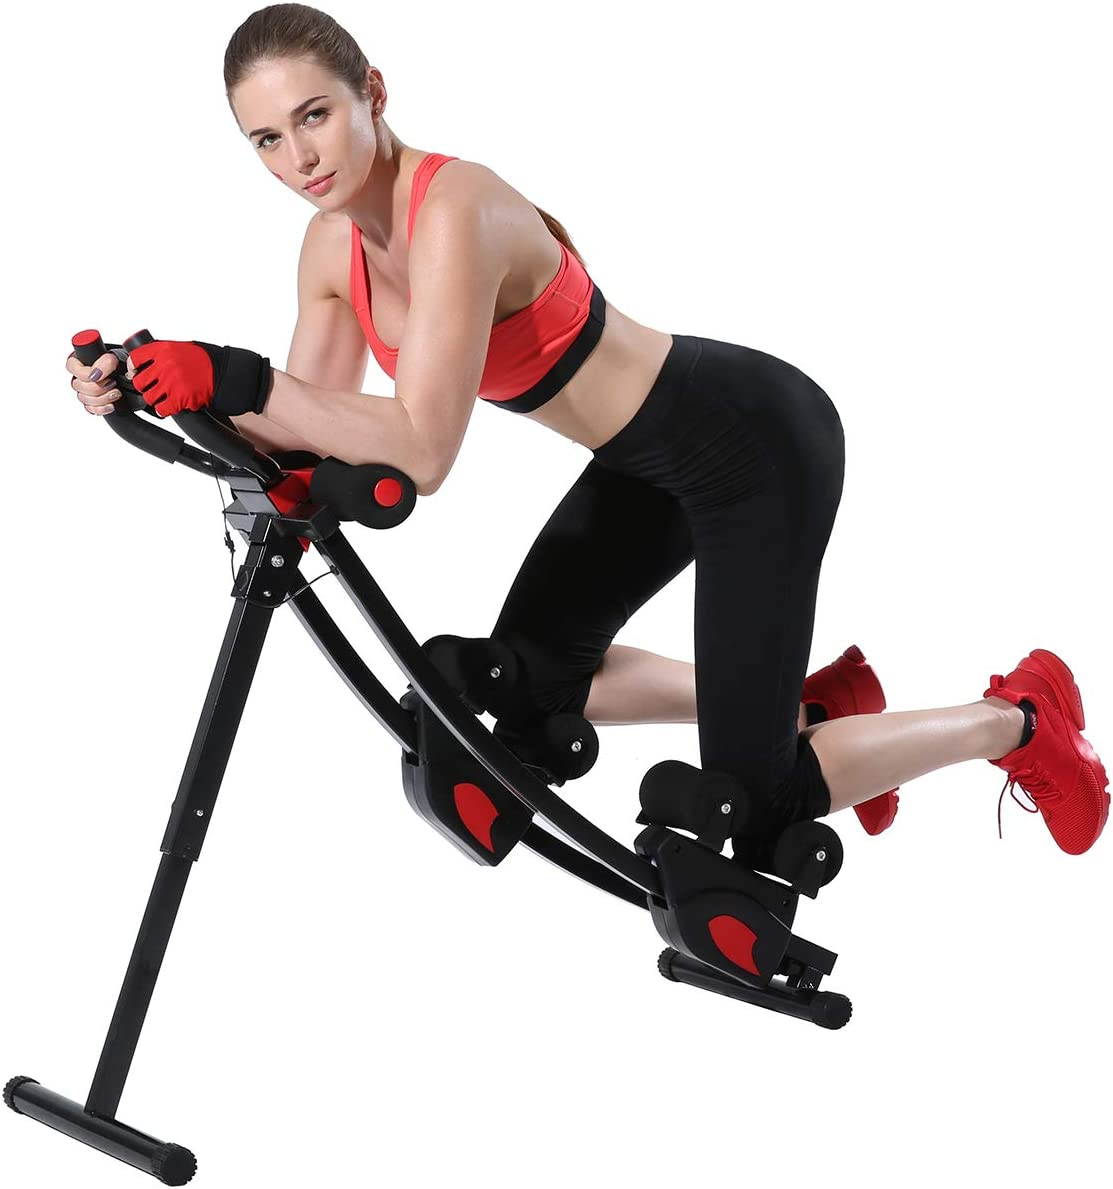 KESHWELL Ab Machine, Core Abs Workout Equipment for Home Gym, Waist Trainer for Women & Men,Height Adjustable Strength Training Abdominal Cruncher, Foldable Core Abs Exercise Trainer.